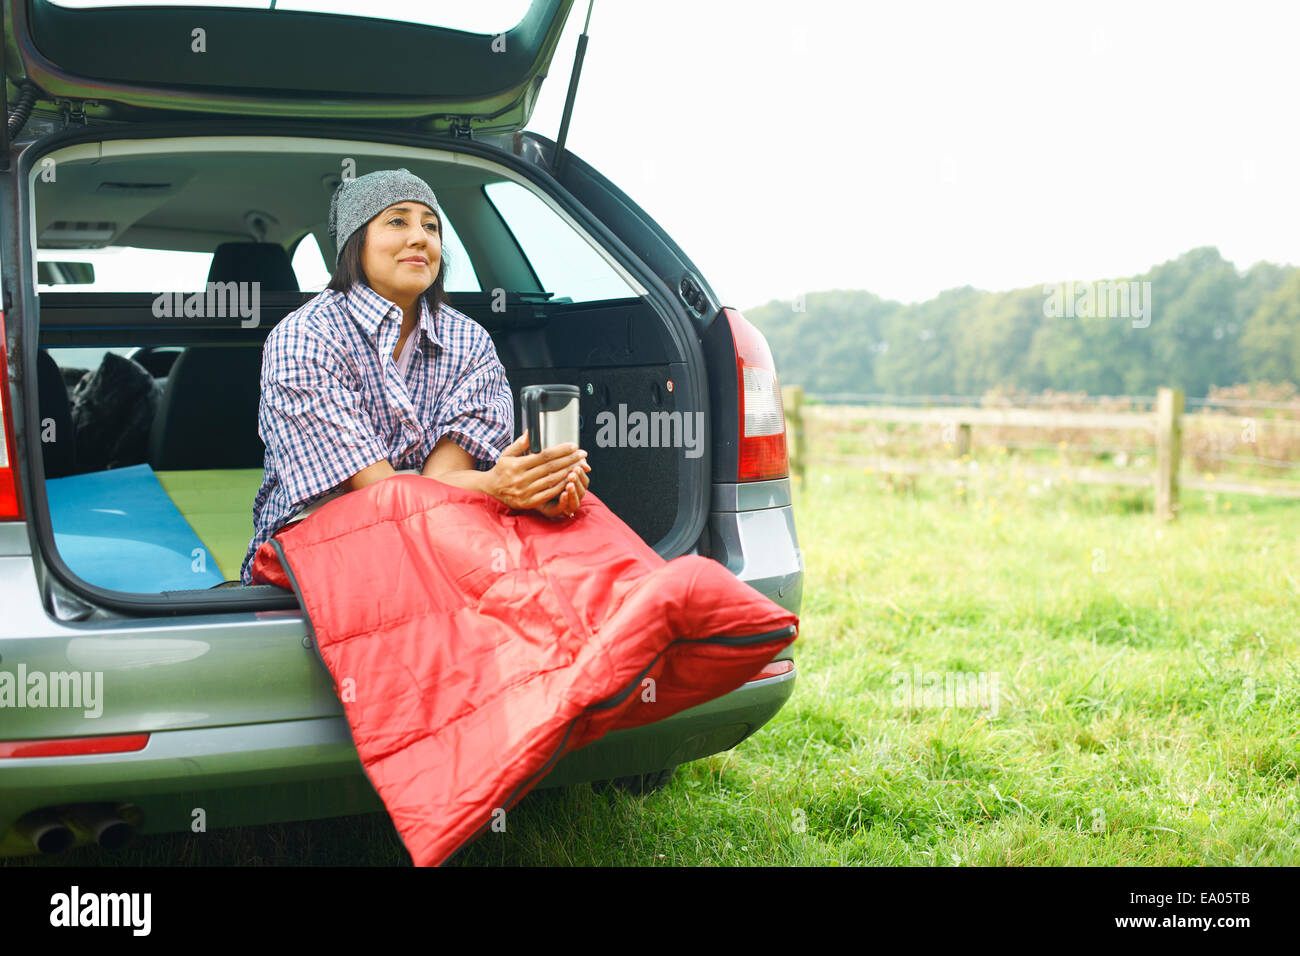 Woman sitting at rear of car with legs tucked in sleeping bag - Stock Image